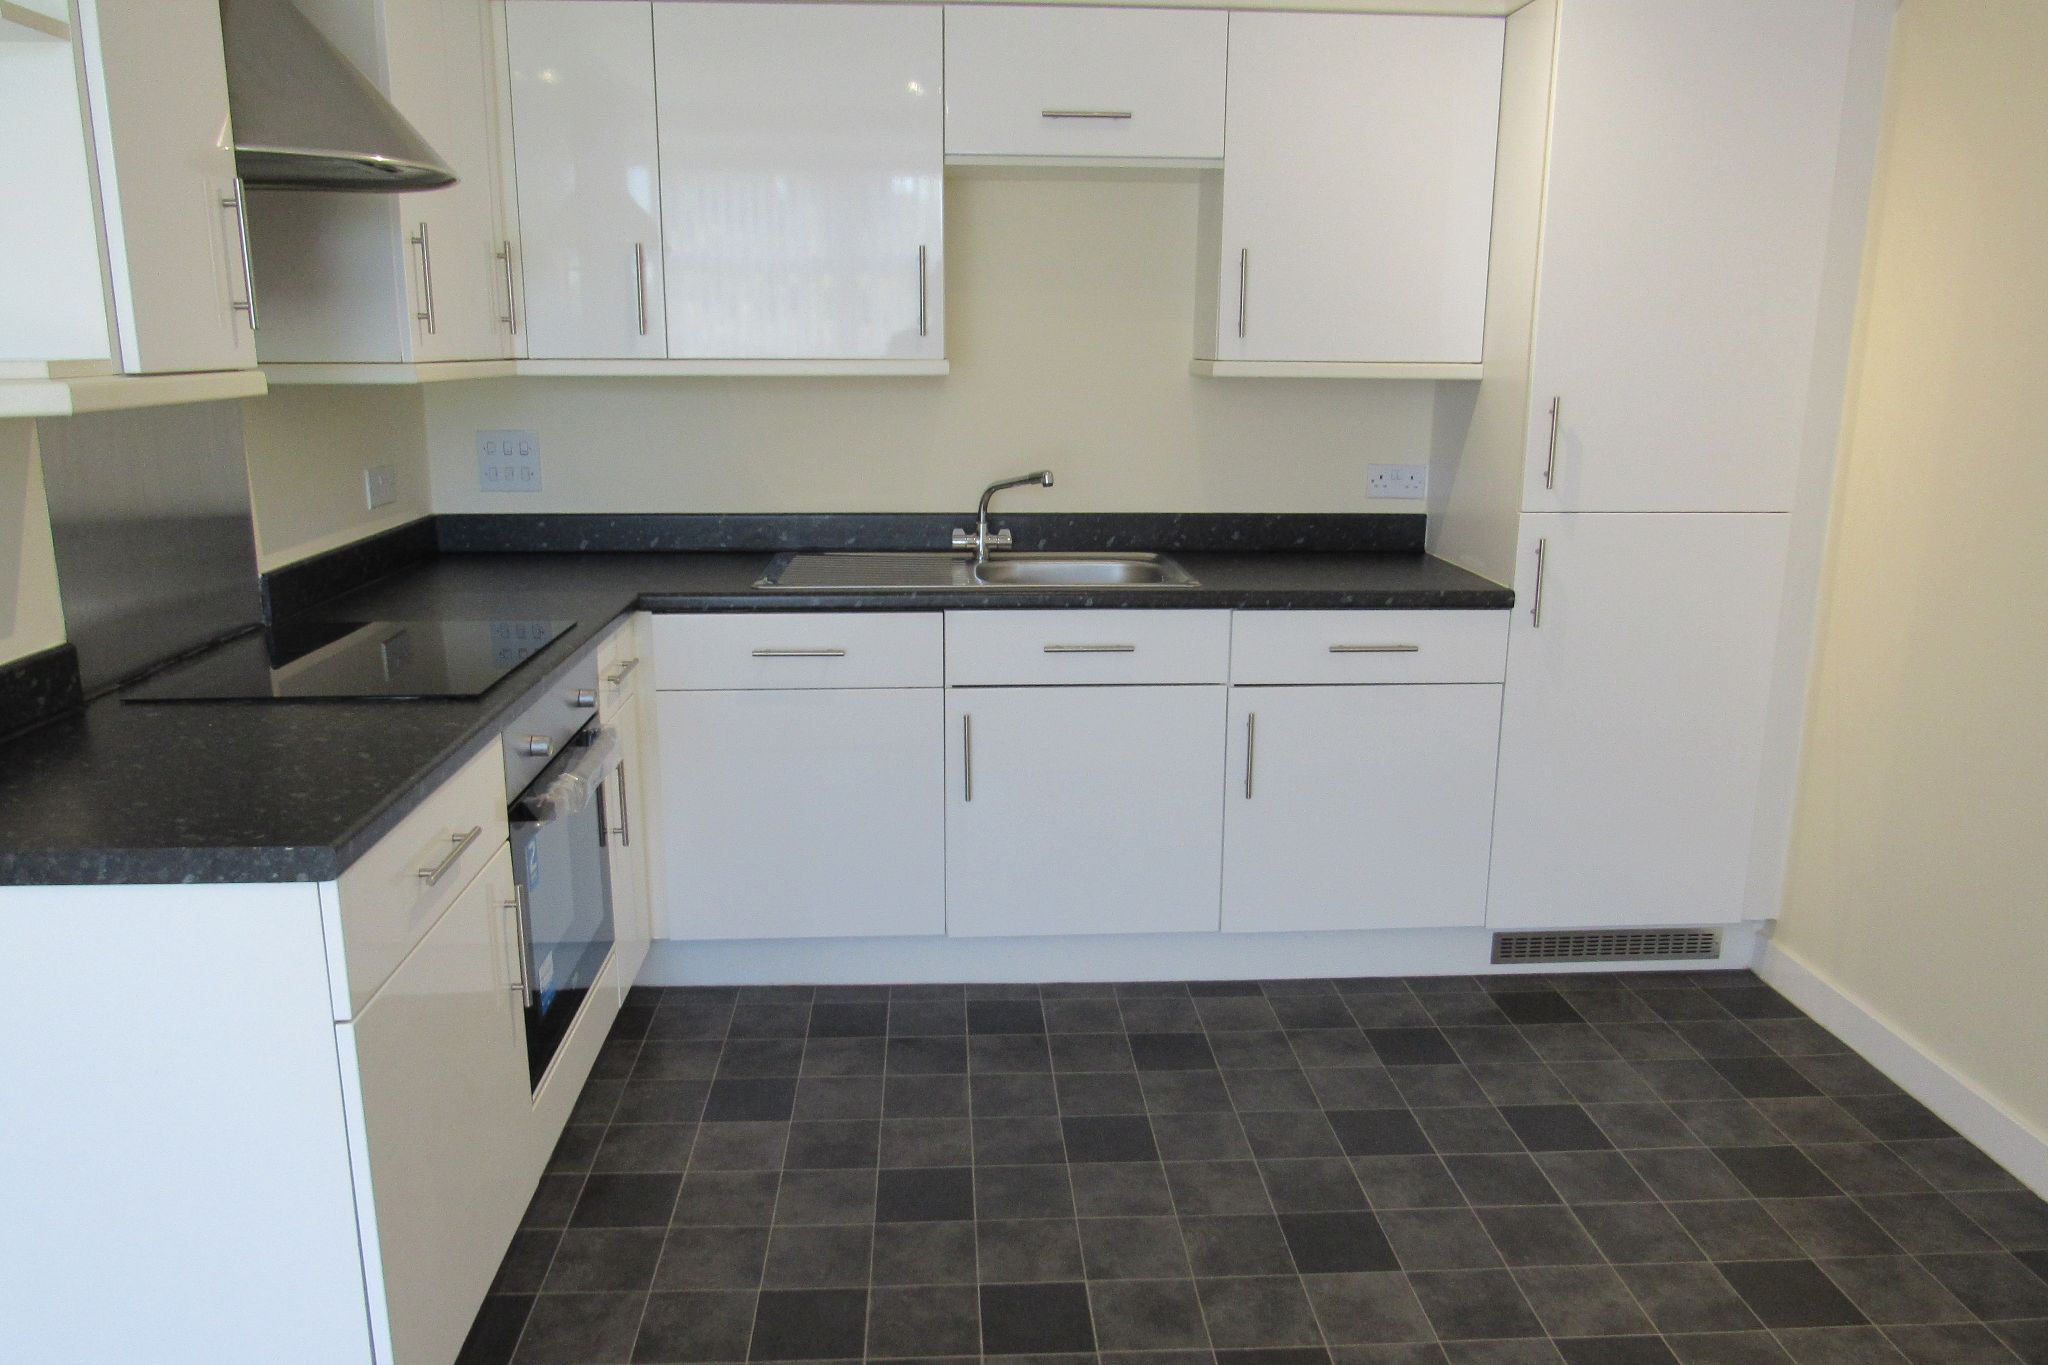 2 bedroom apartment flat/apartment For Sale in Manchester - Photograph 5.